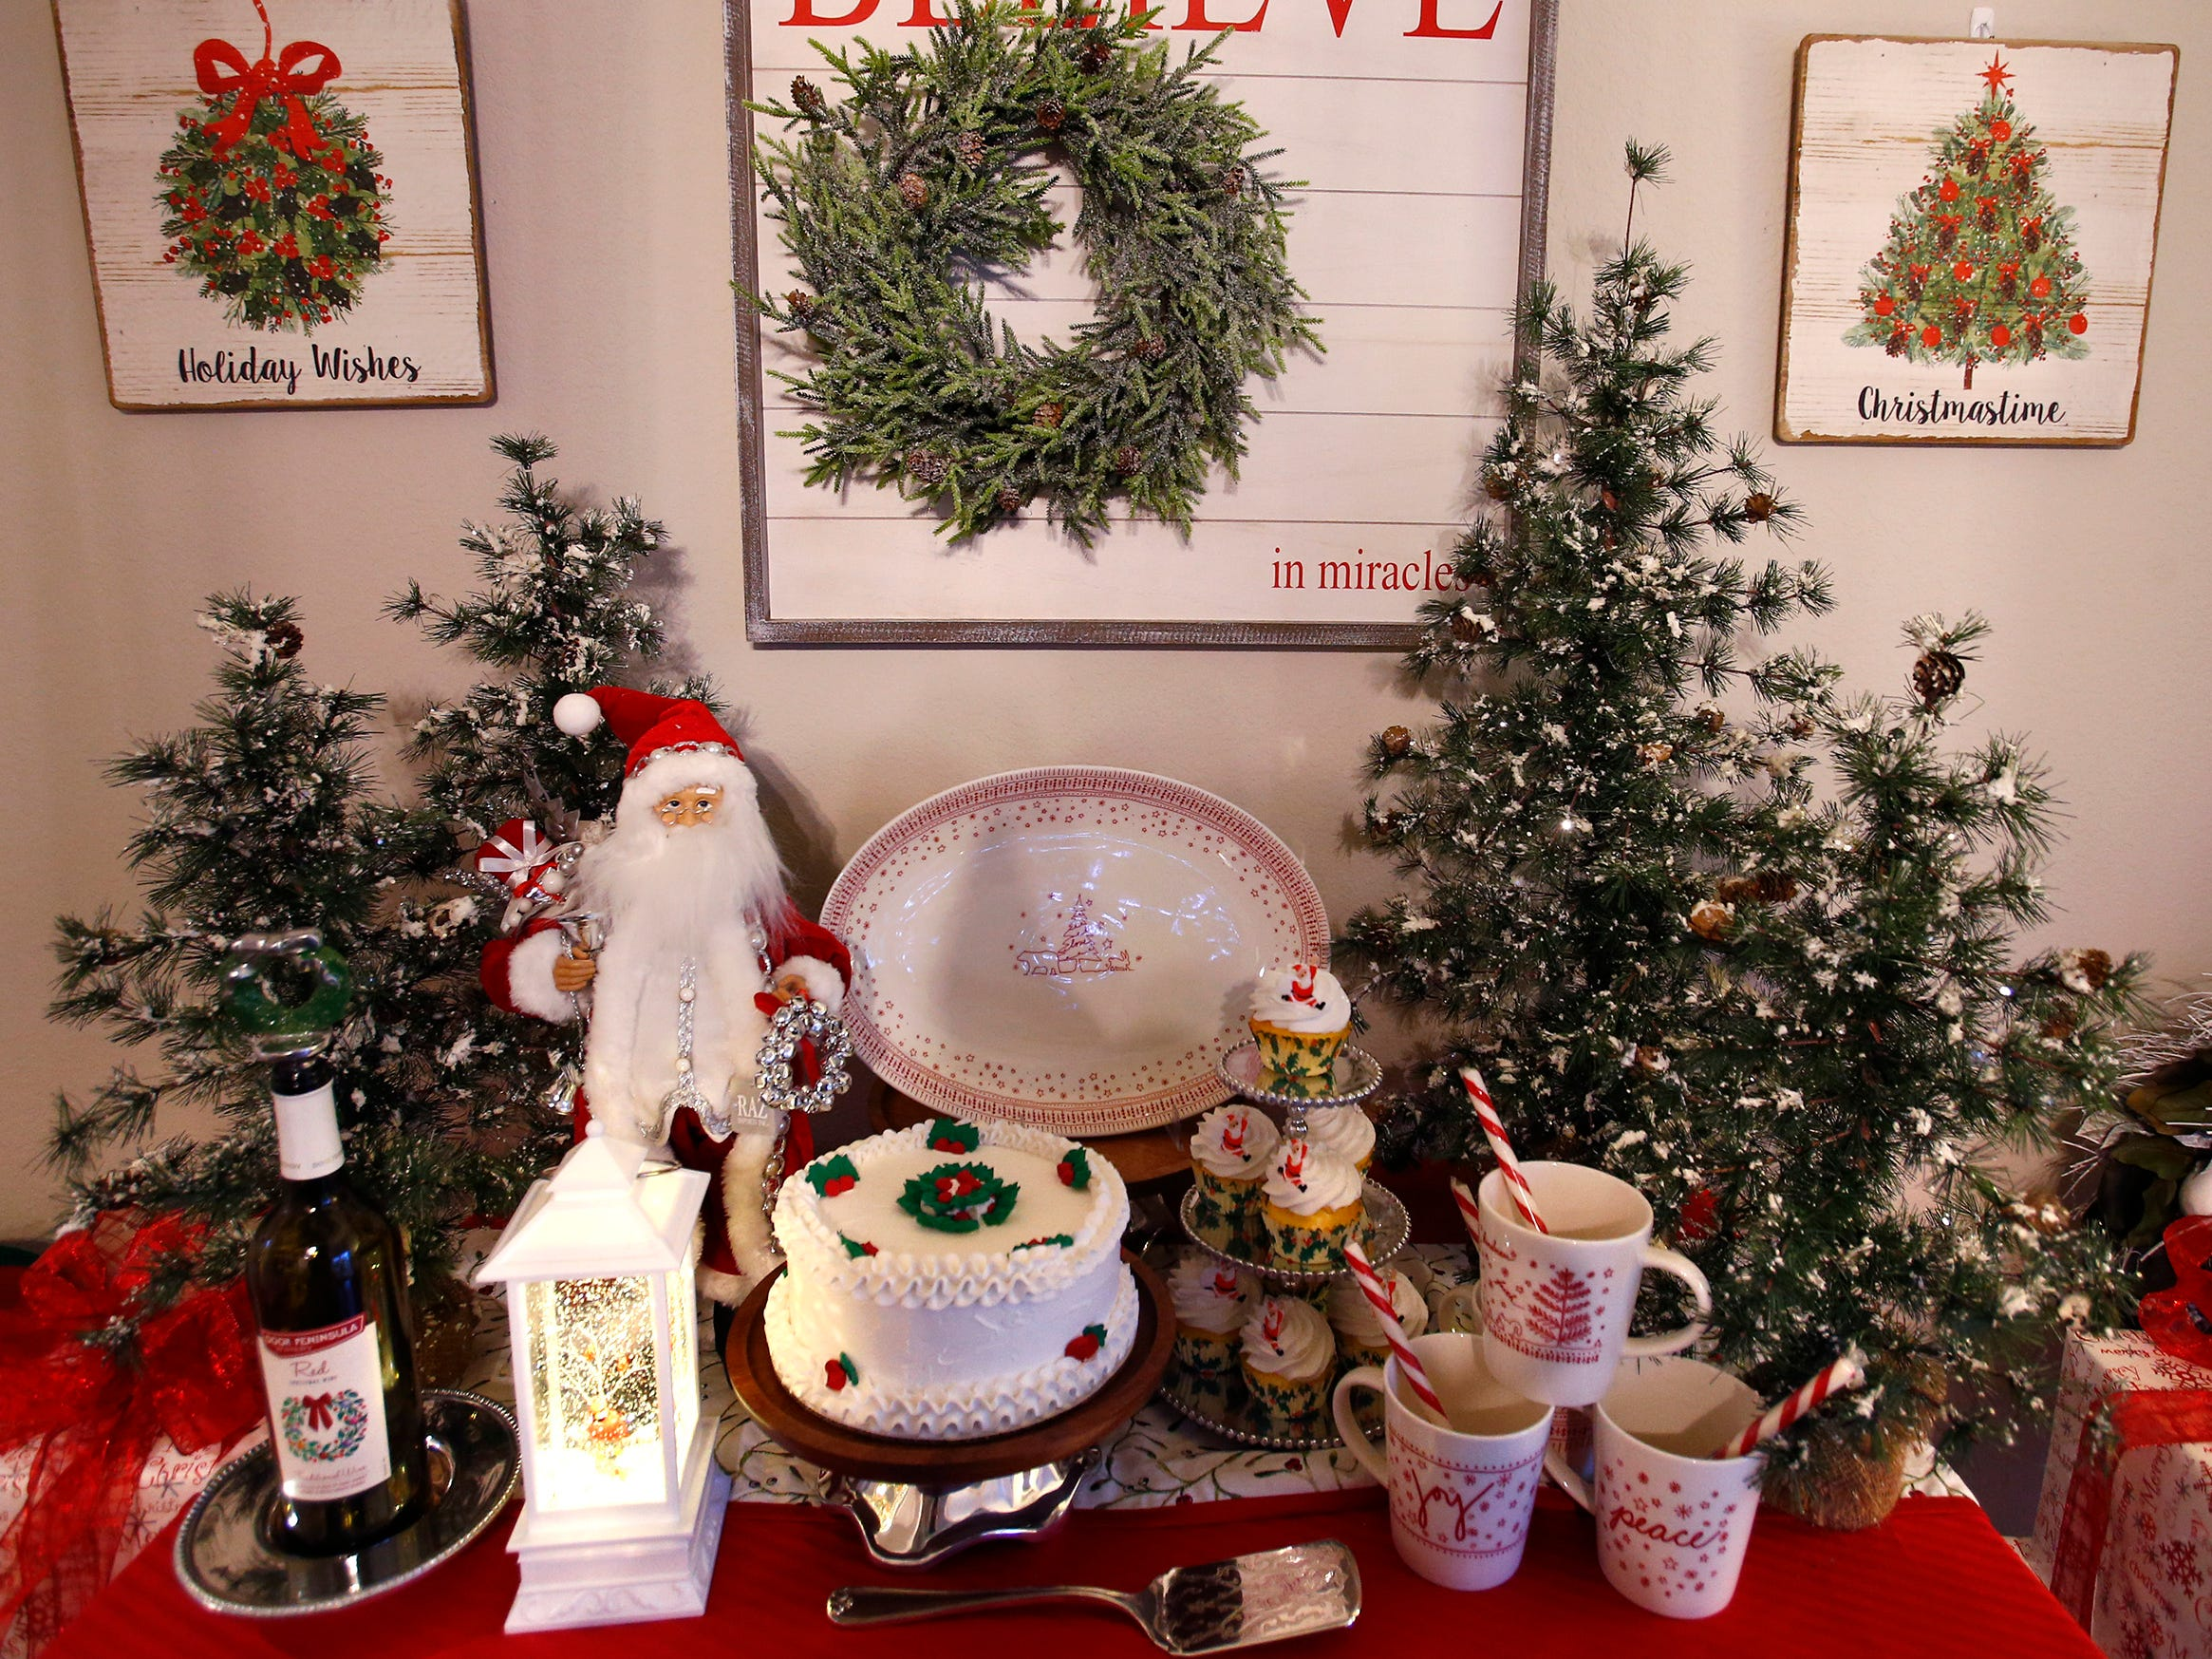 The dining room sideboard is set for the 26th annual Christmas Fantasy House with 18 rooms decorated by more than 16 area decorators to benefit the Ronald McDonald House Charities Eastern Wisconsin. The Fantasy house will be open 10 a.m. to 8 p.m. on Nov. 9, and 10 a.m. to 6 p.m. on Nov. 10 and 11. Parking and shuttle to the House is at Ridgewood Baptist Church, 2720 Lilly Road, Brookfield. Tickets are $20 at the door.